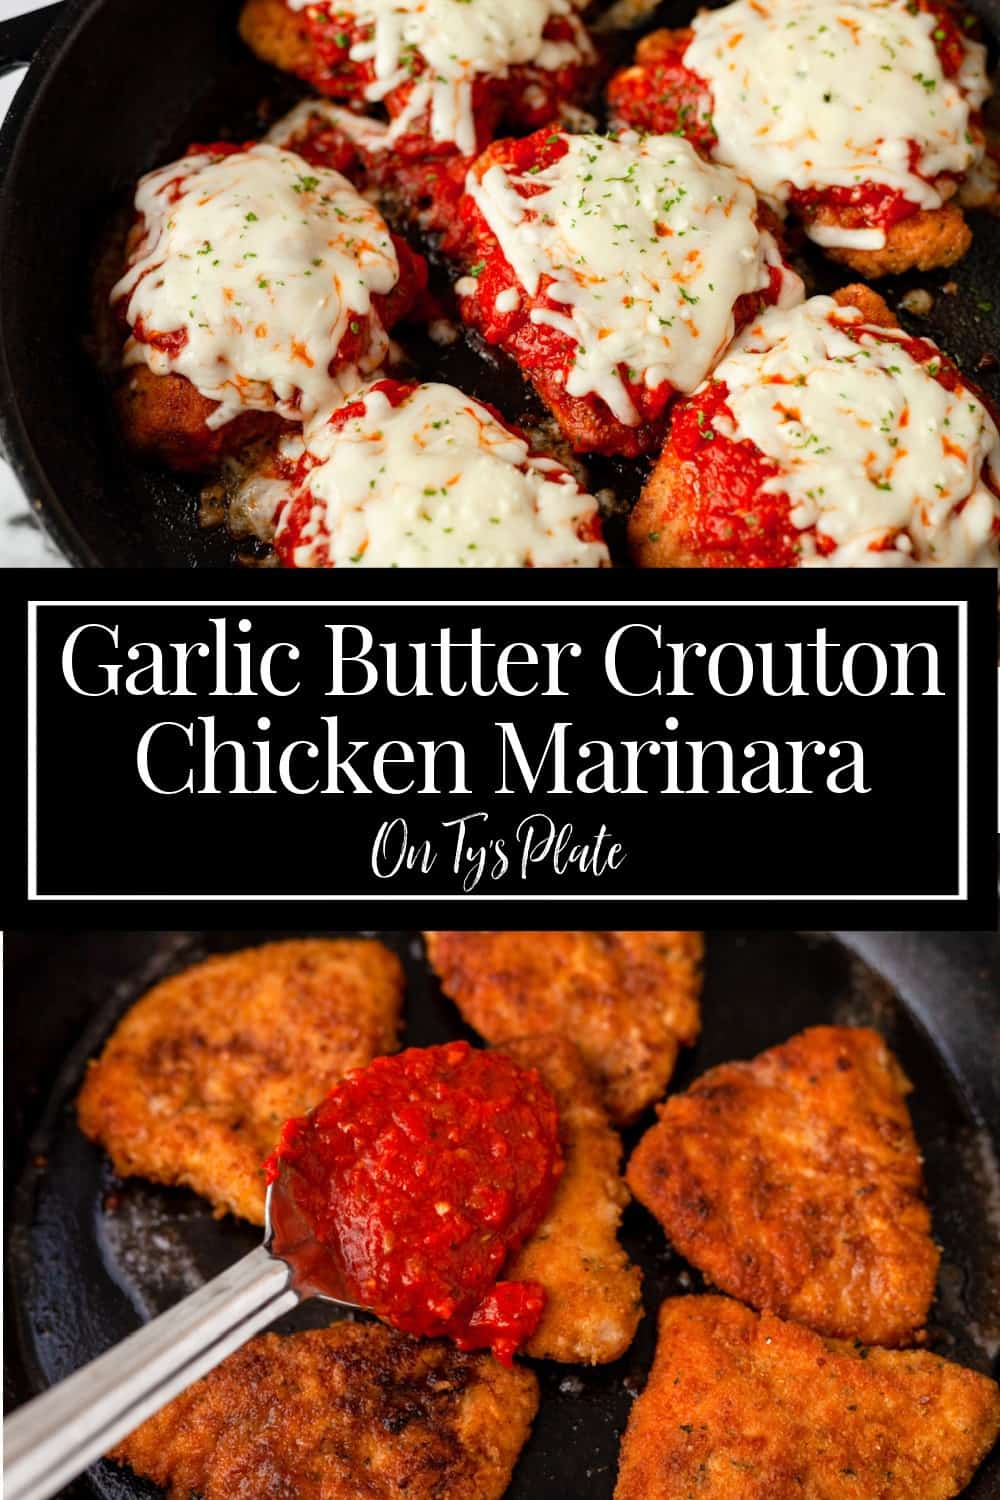 Garlic Butter Crouton Chicken Marinara